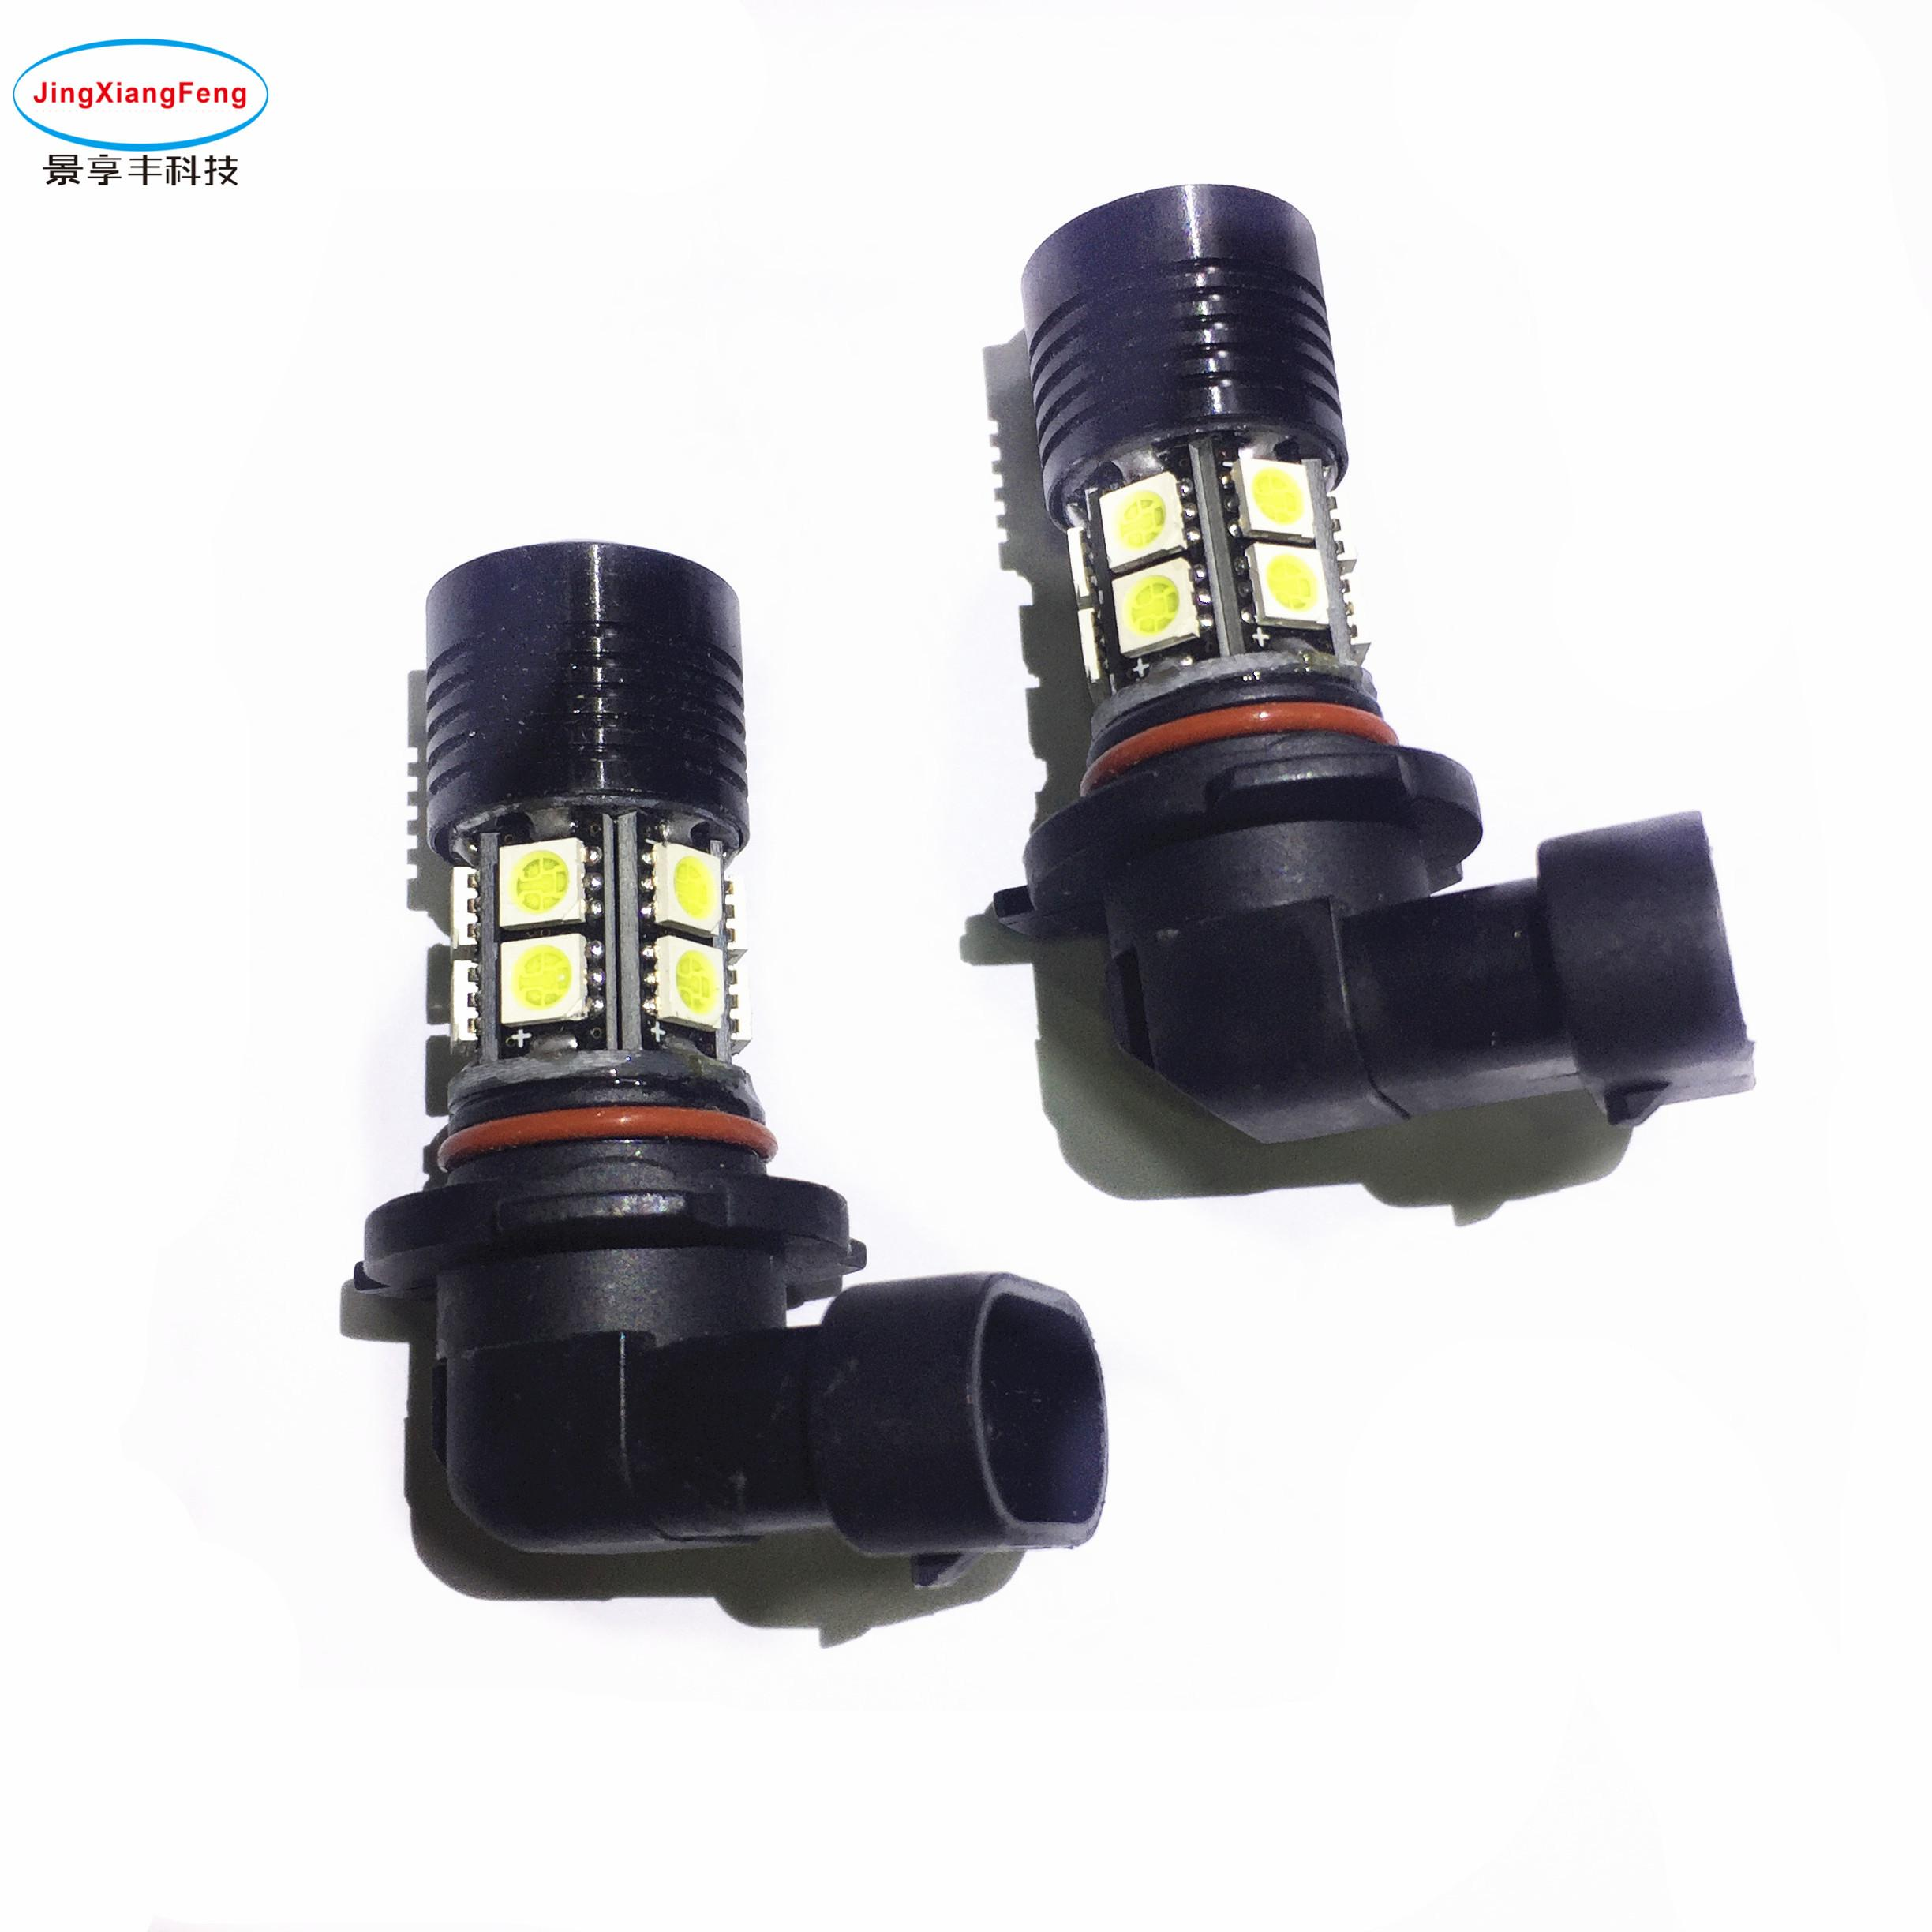 2XCar 9005 Hb3 9006 LED Fog Lamp Daytime Running Light Bulb Turning Parking 12V Headlights Headlamps Car Online With 1371 Piece On